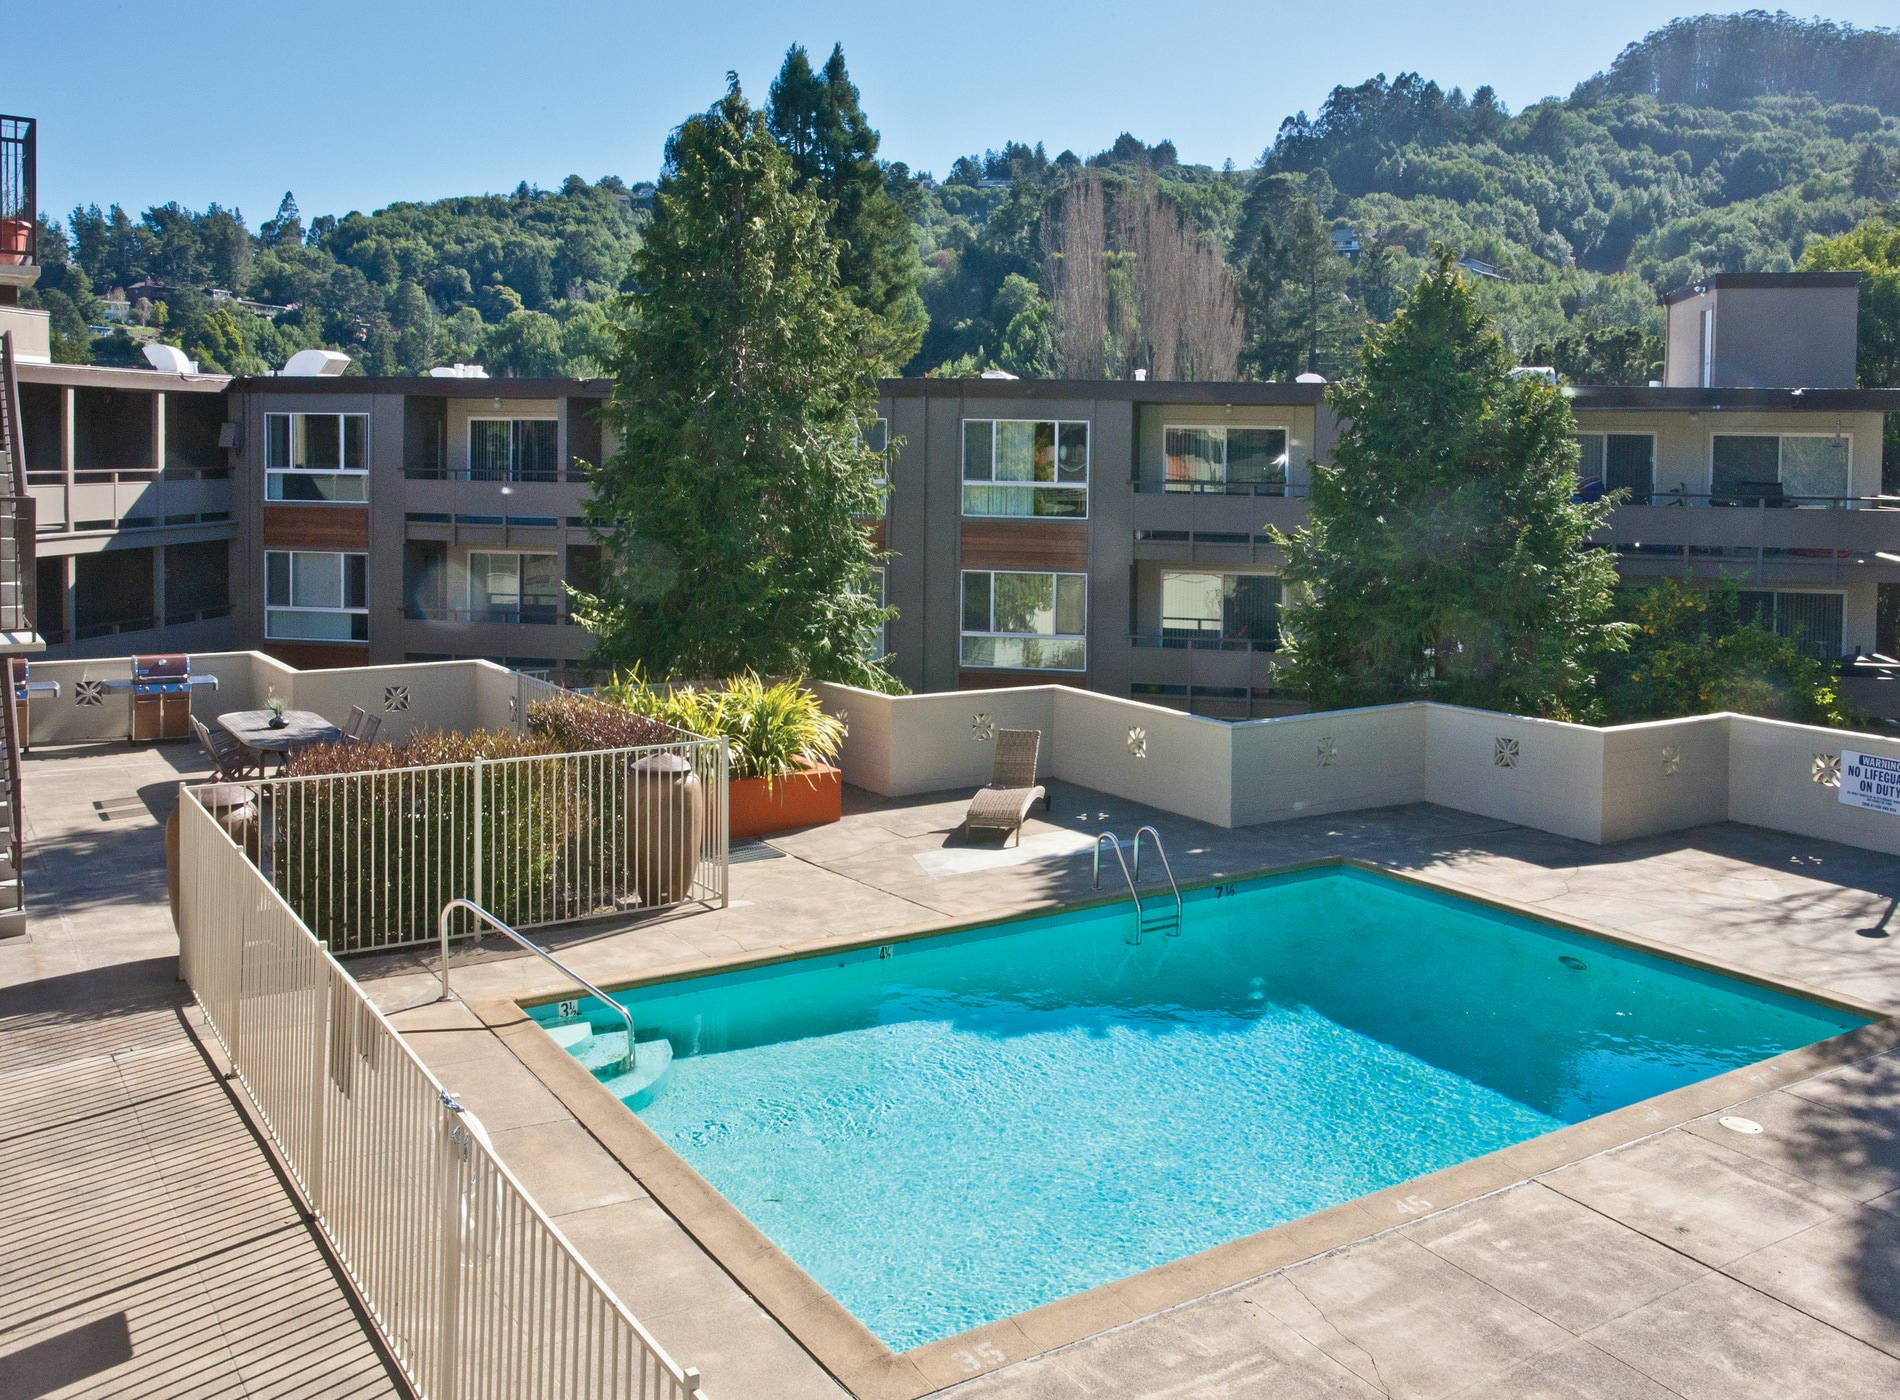 amenities at pineridge apartments in mill valley